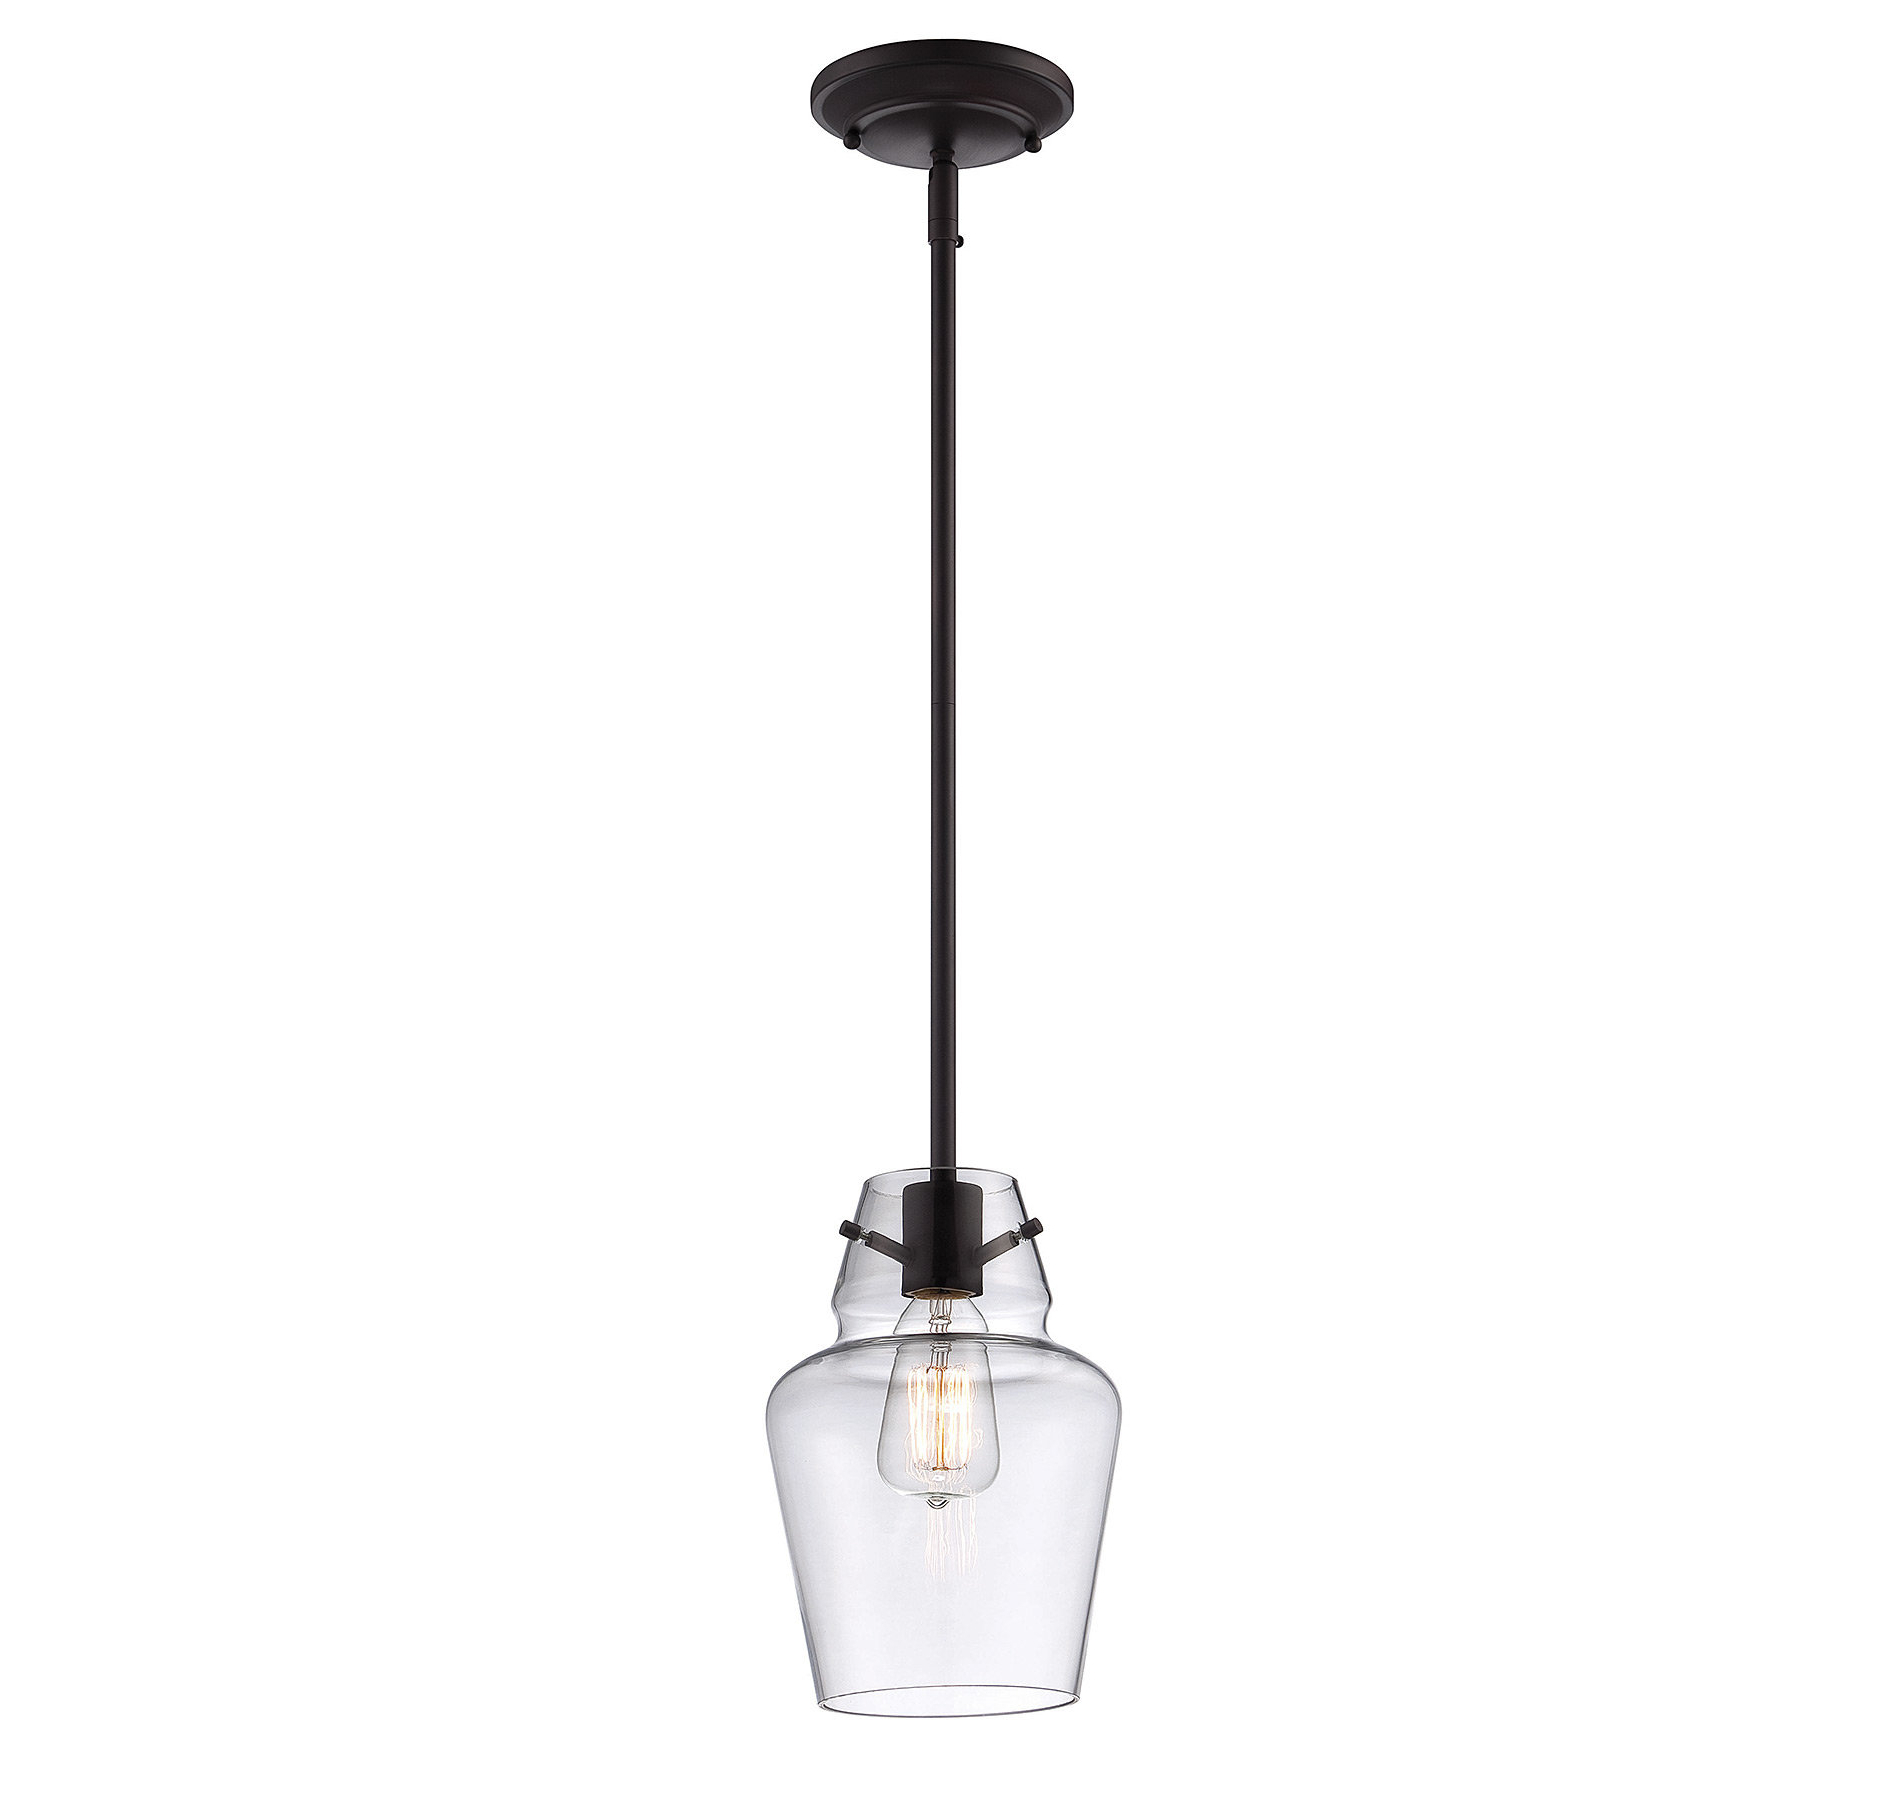 Popular 1 Light Single Bell Pendants In Roslindale 1 Light Single Bell Pendant (View 19 of 20)